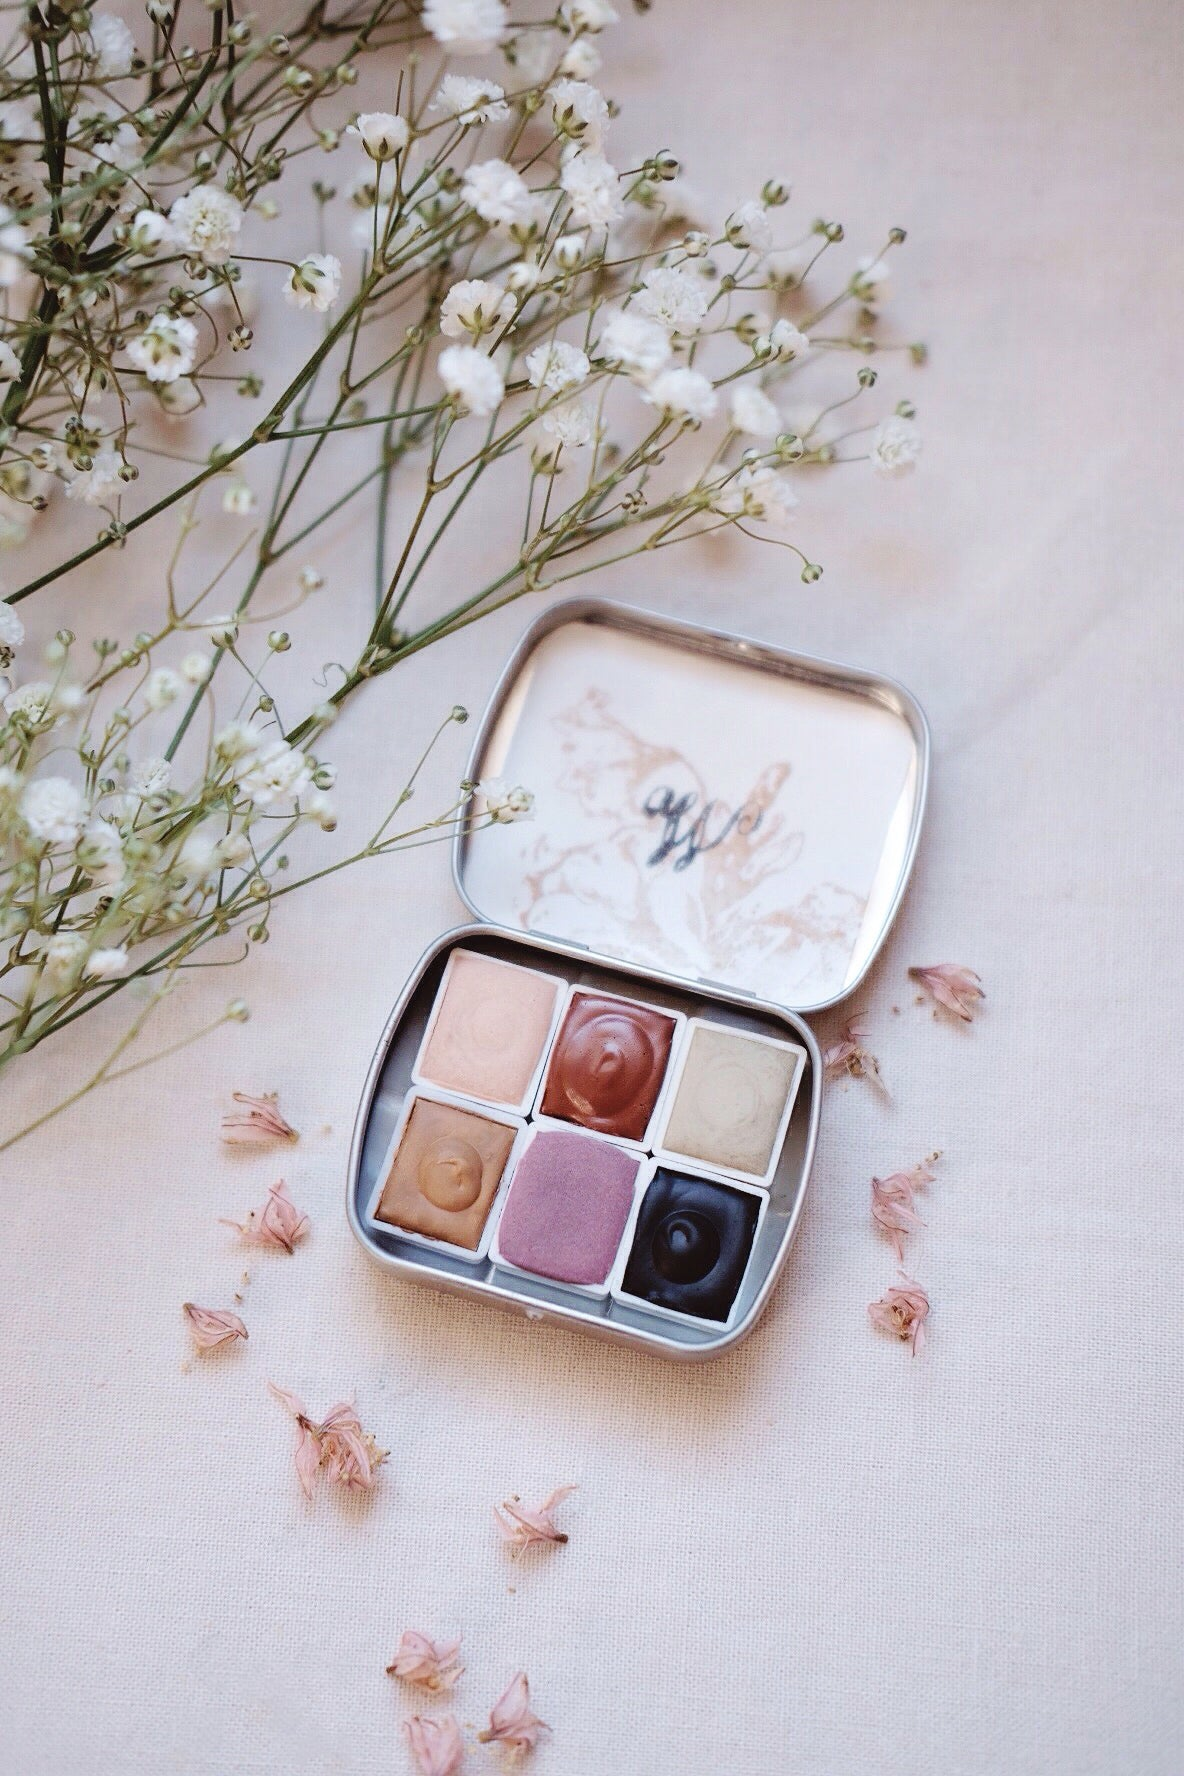 RESERVE for Sehyoung + Foxtail Lily + Limited edition Gemstone Earth Mineral watercolor palette